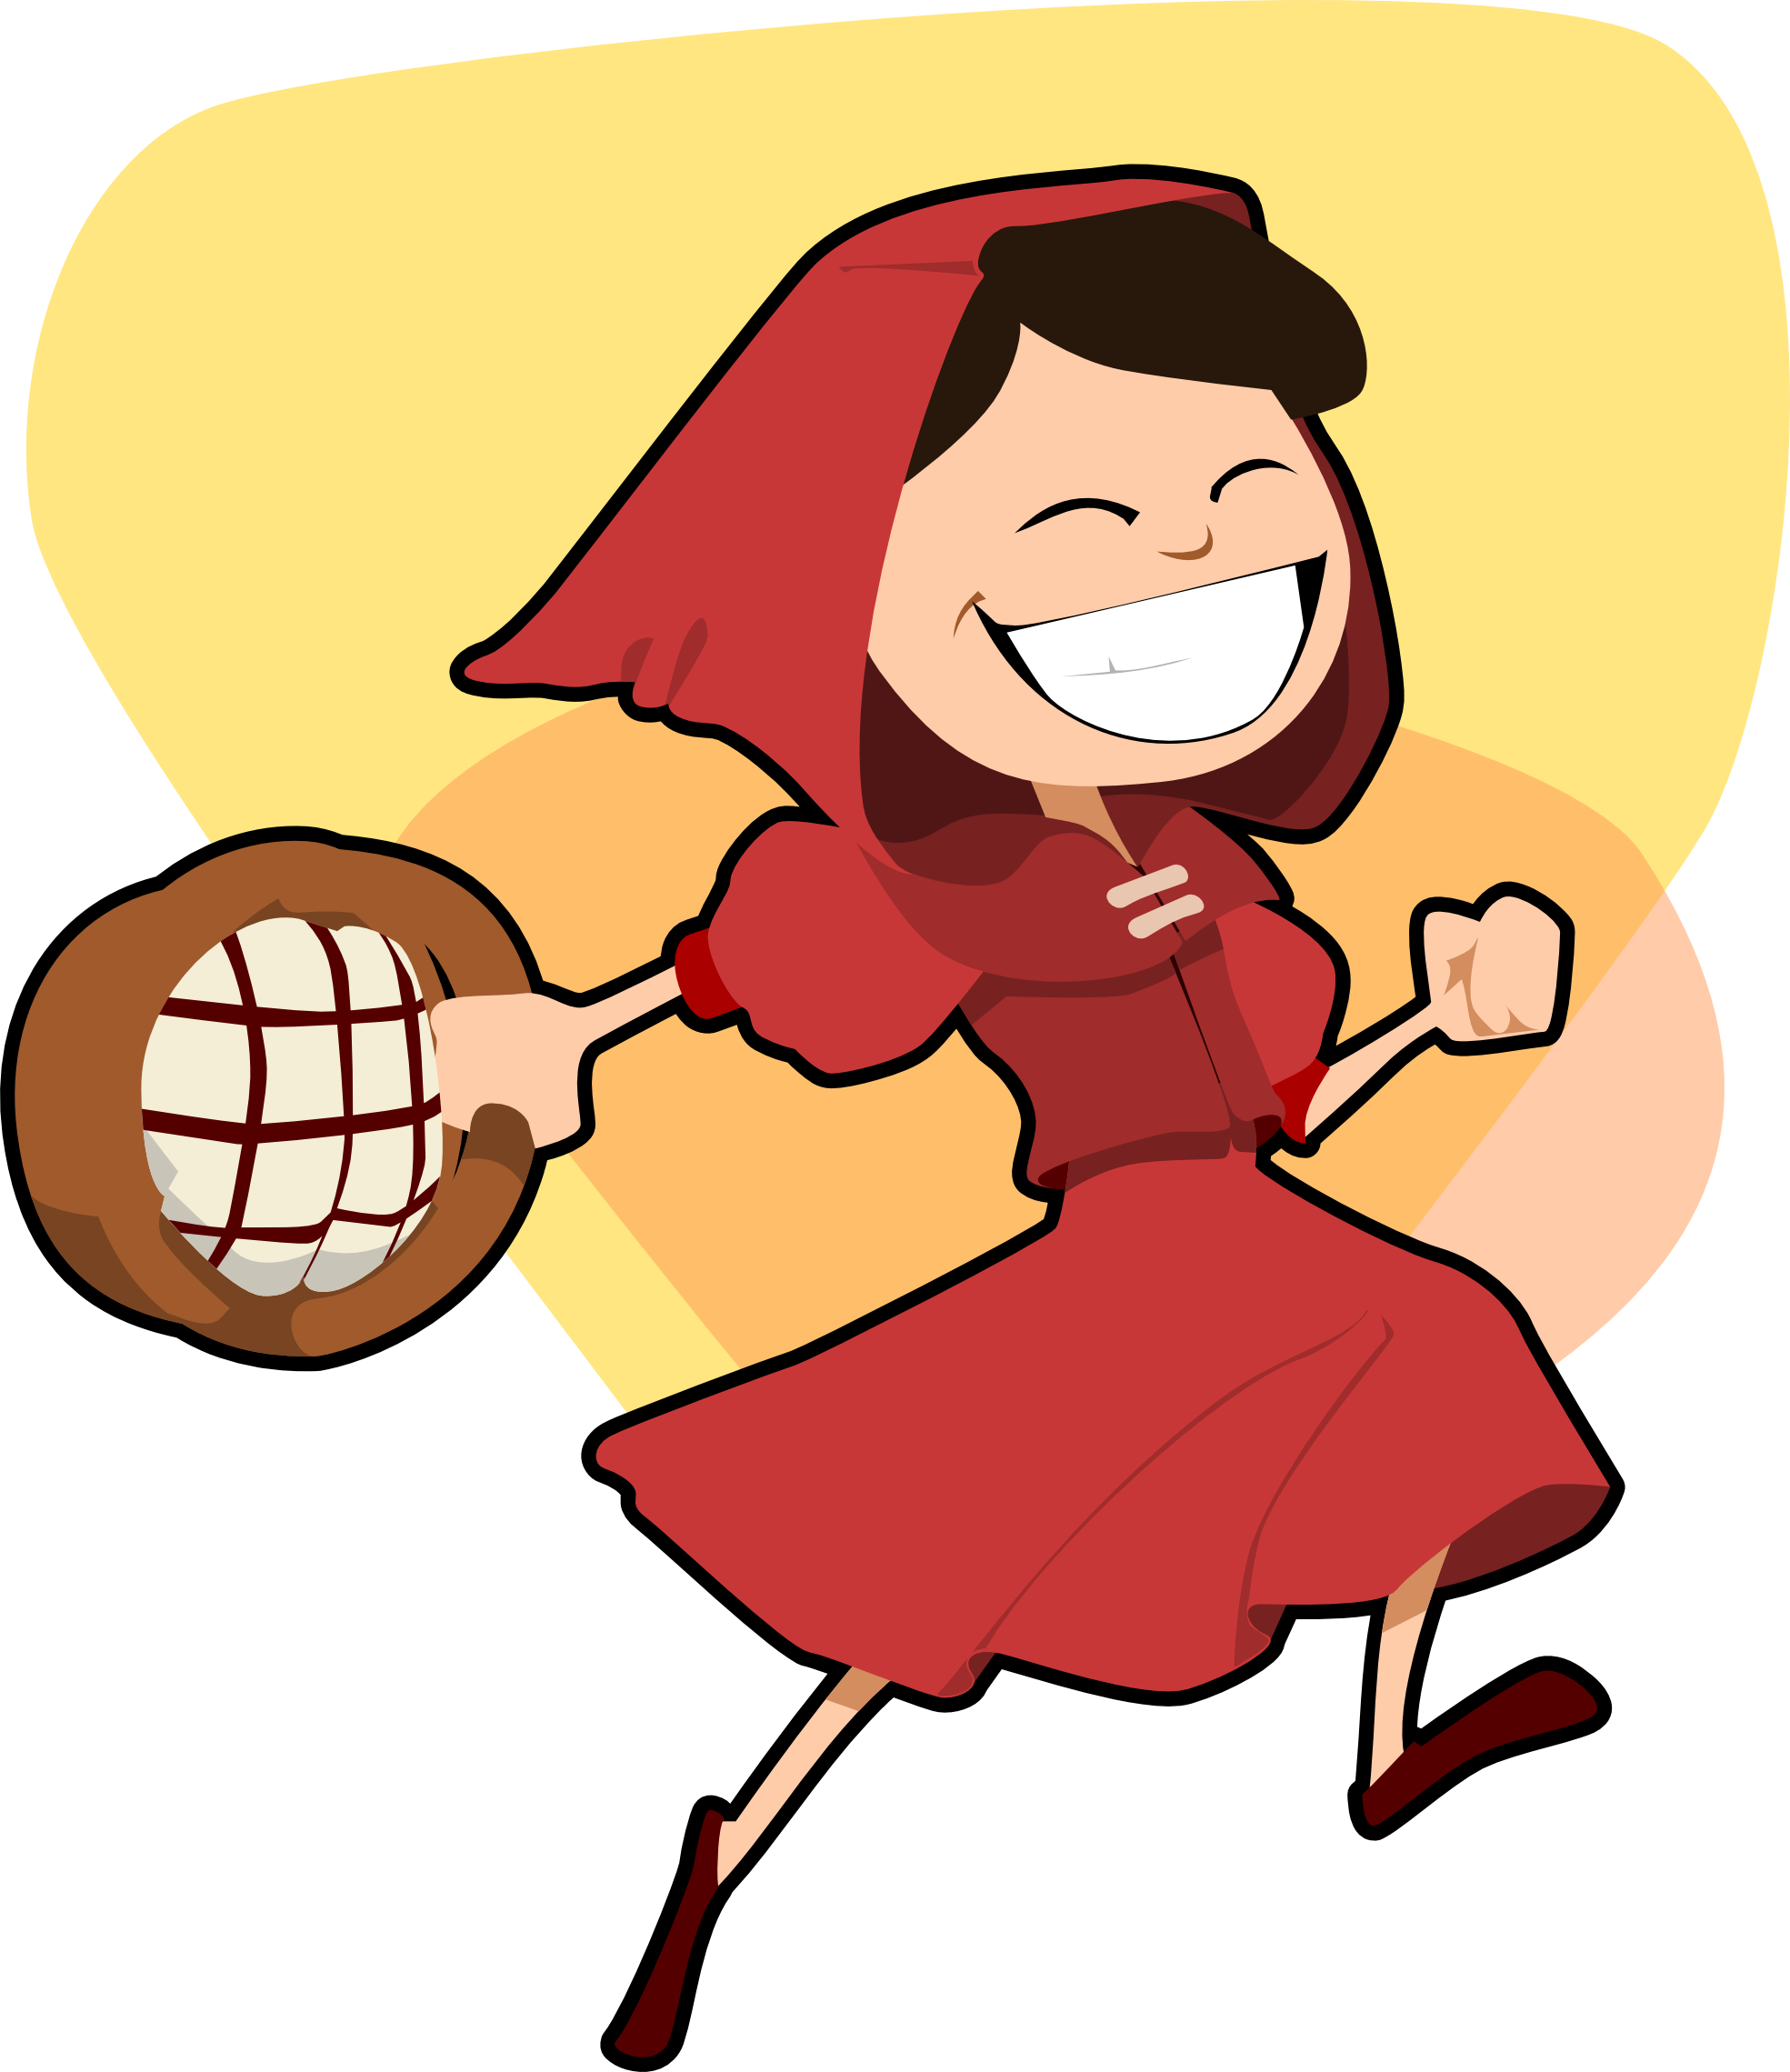 little red riding hood scalable vector graphics - Clipart library